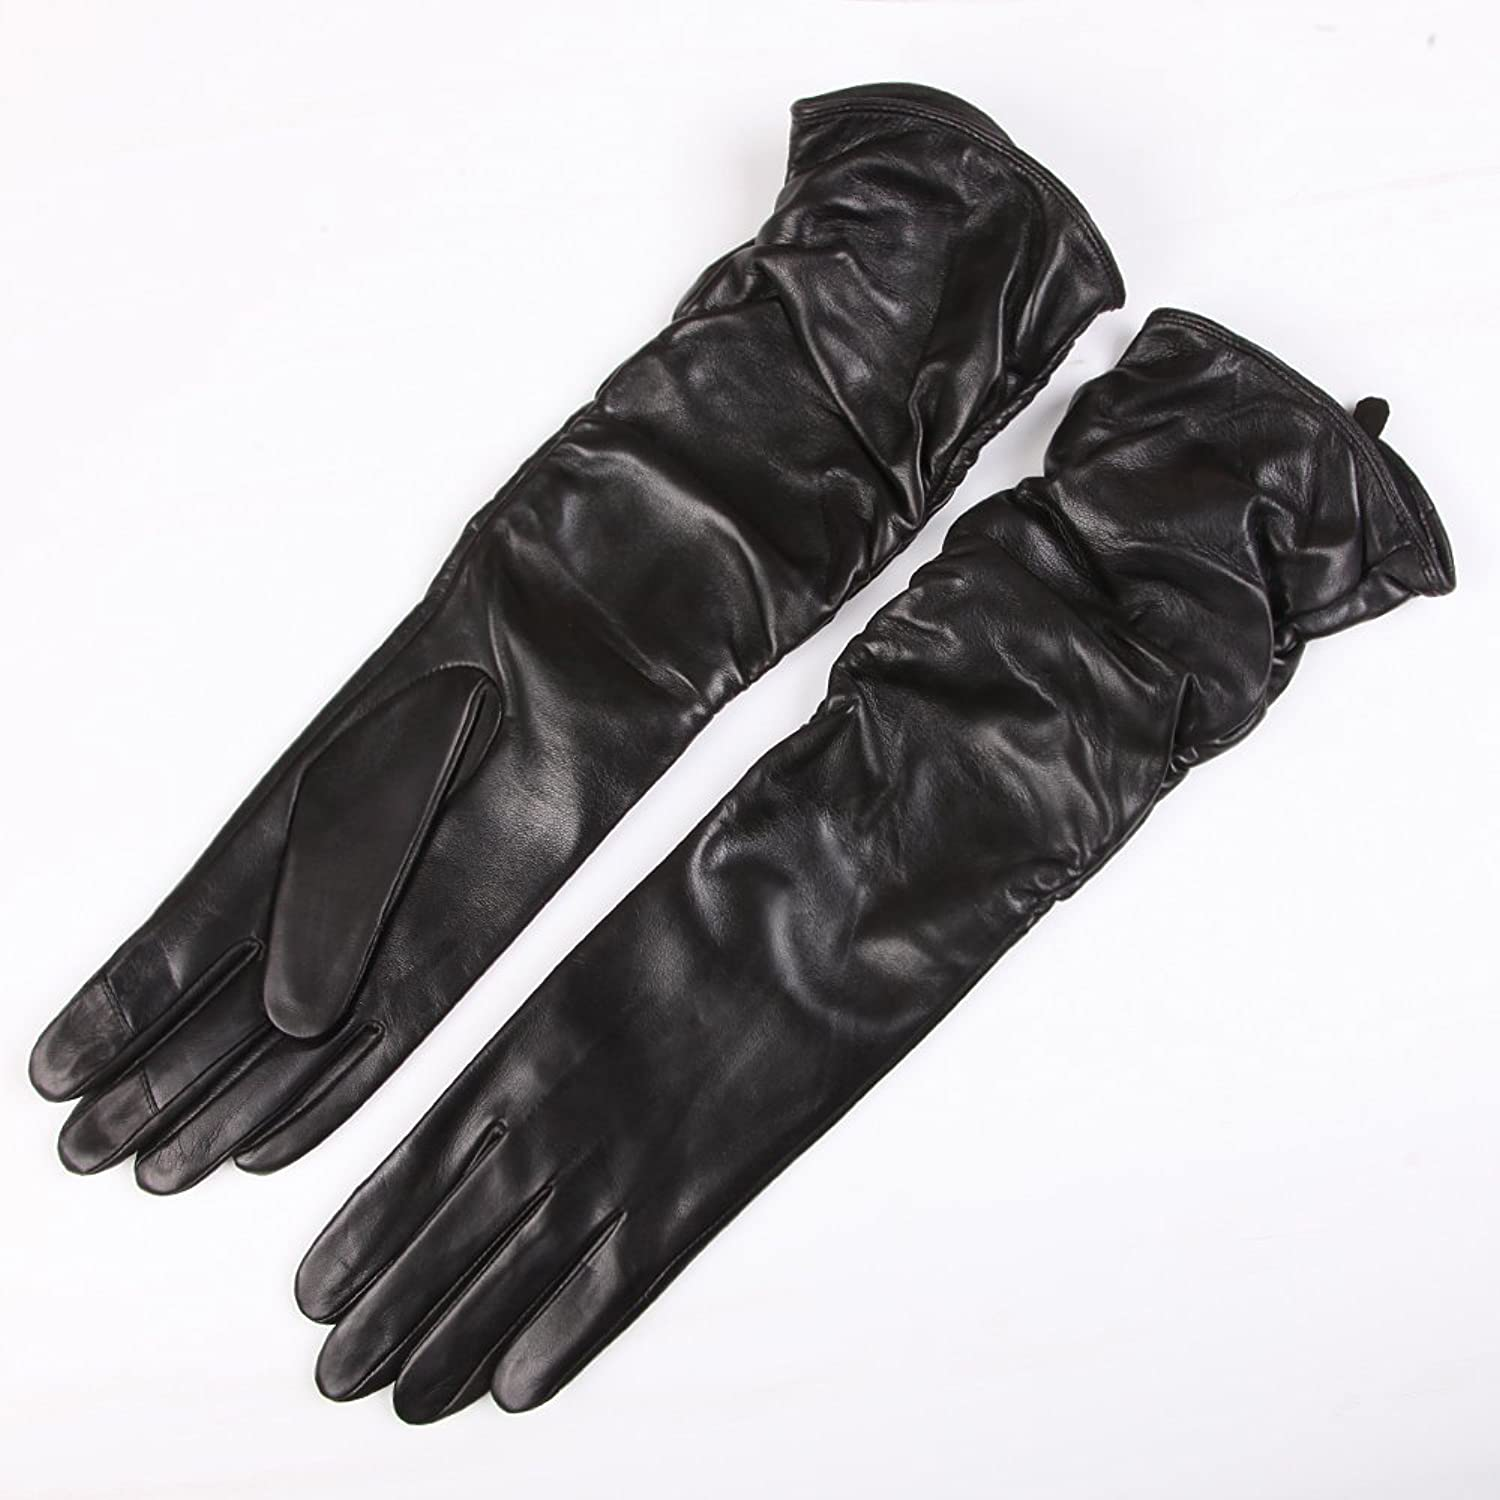 Womens leather smartphone gloves - Warmen Winter Fleece Lined Ruched Elbow Length Long Evening Dress Leather Gloves 6 5 Black Touchscreen Function At Amazon Women S Clothing Store